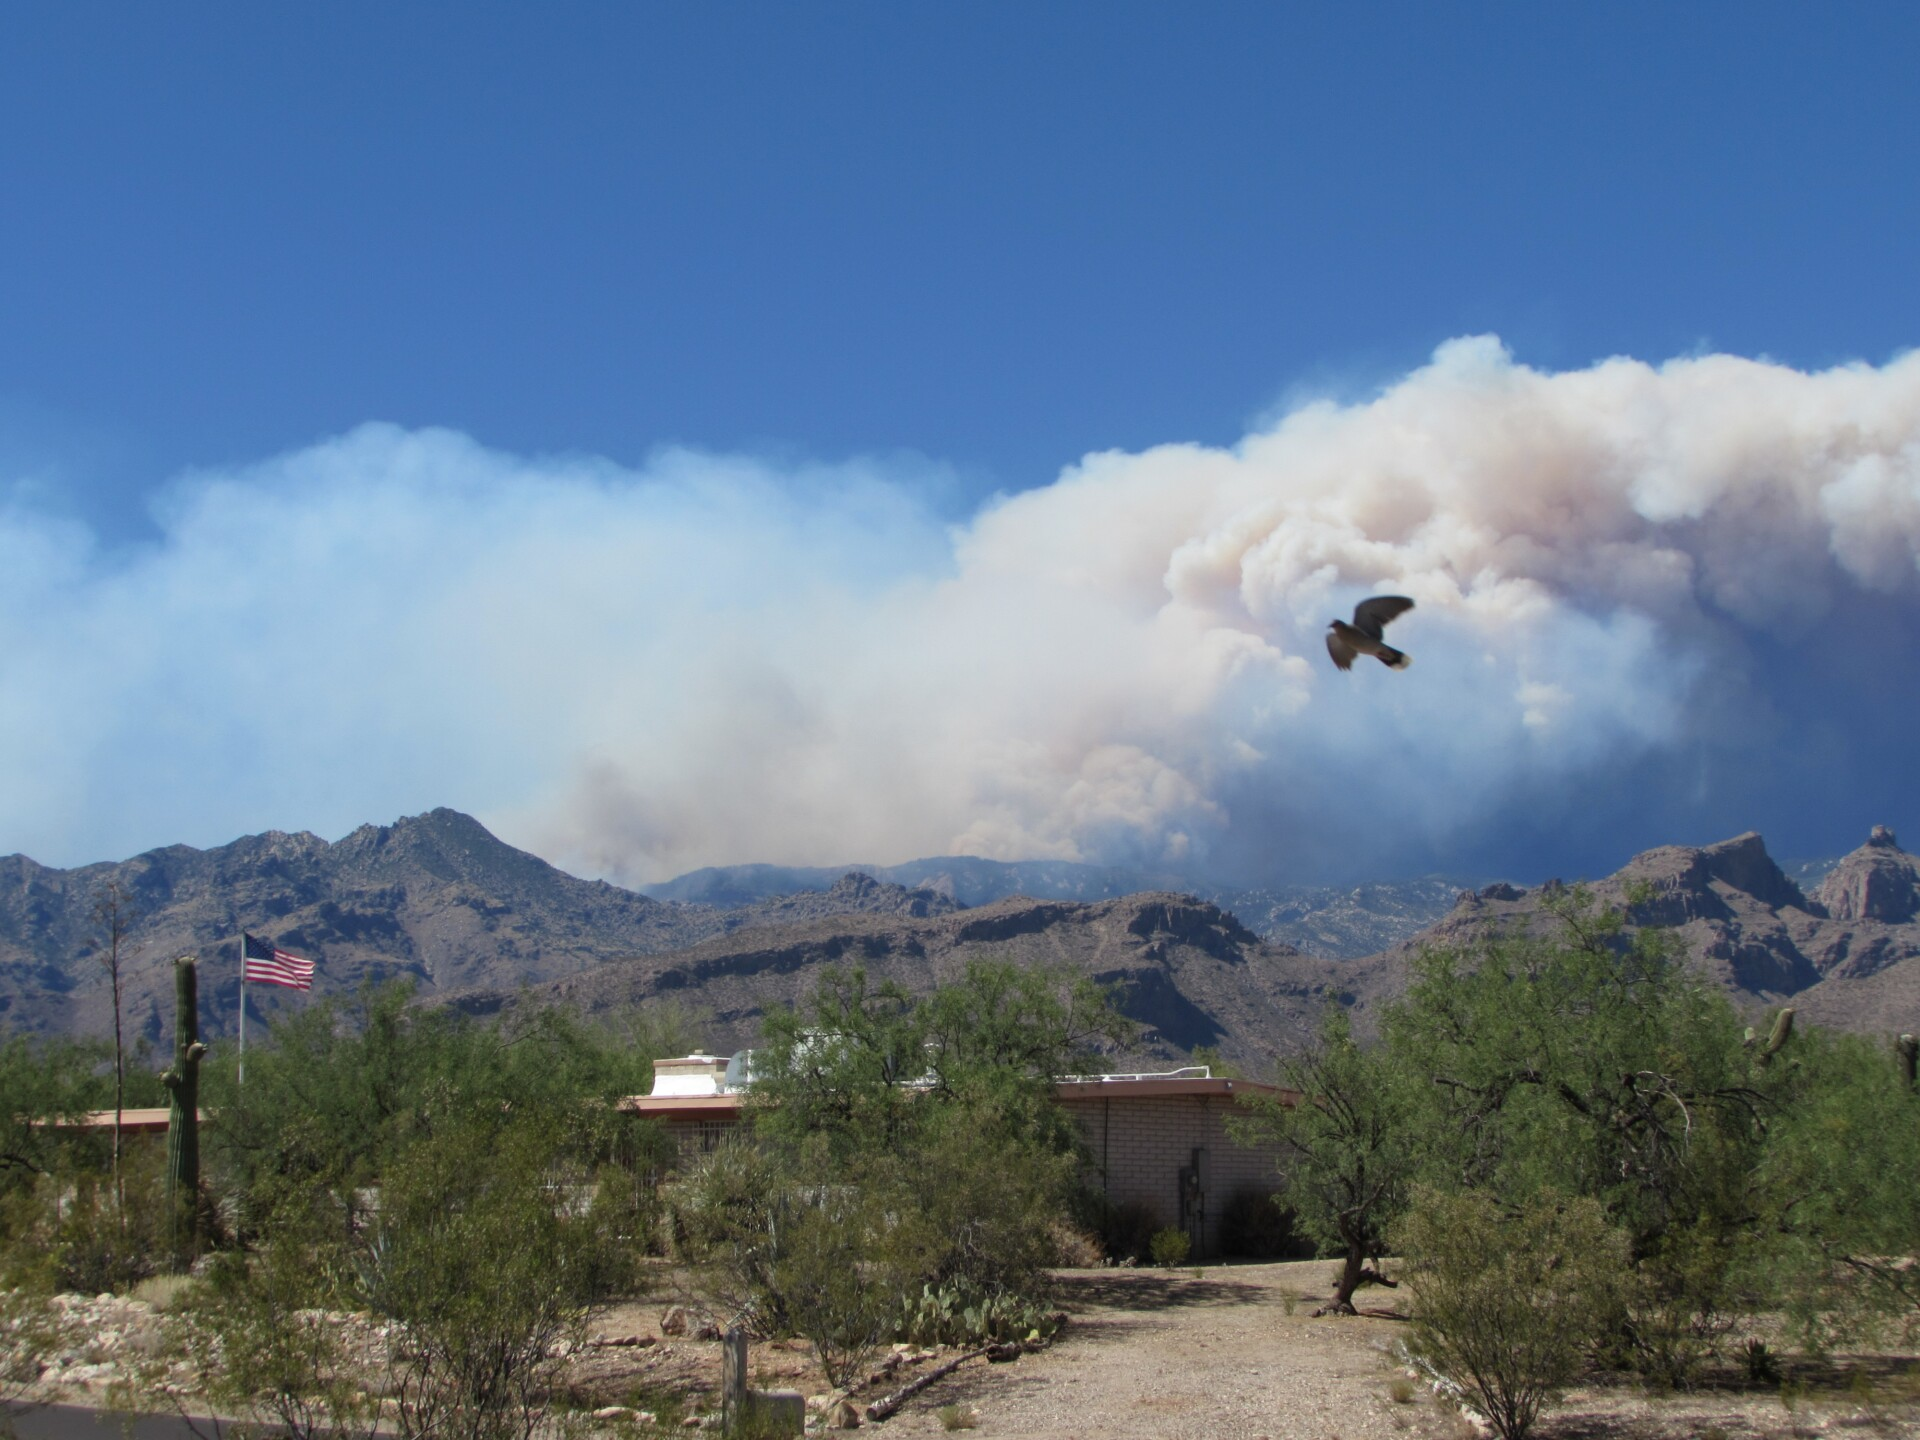 The Bighorn Fire as seen from a distance with a dove flying across in the foreground